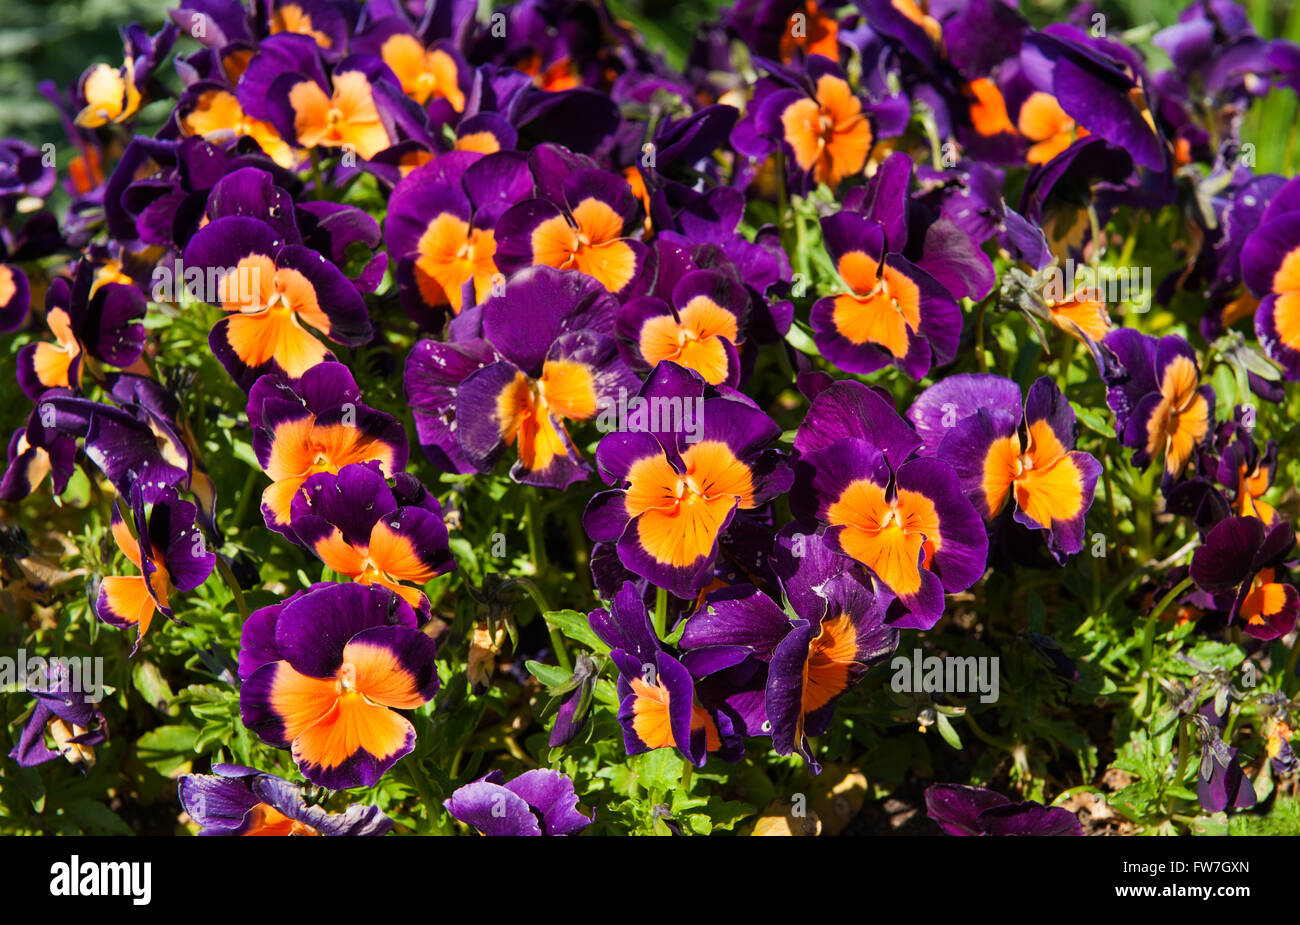 Pink And Orange Flowers In The Garden Latin Name Viola Tricolor